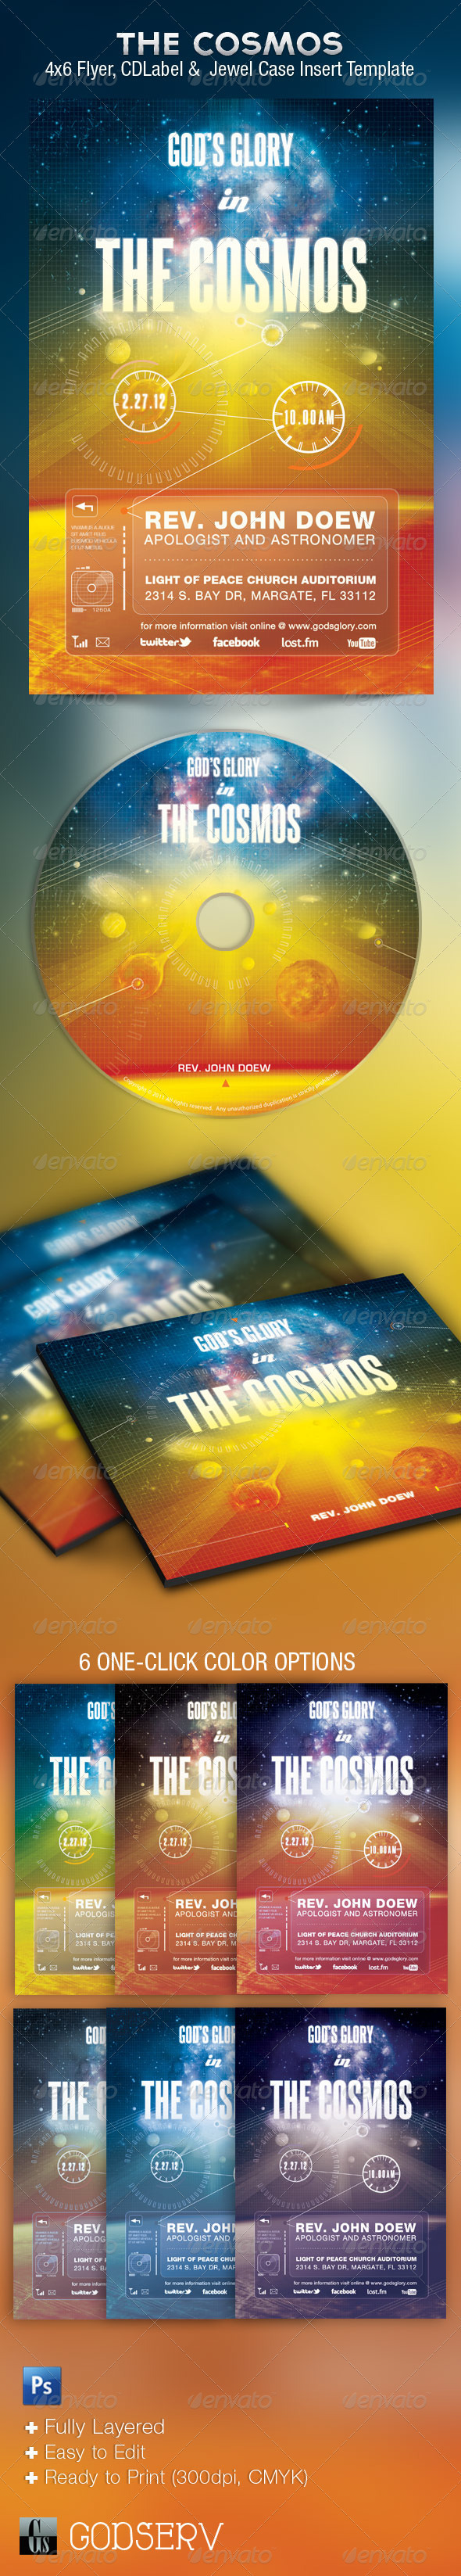 Glory Church Flyer CD Template - Church Flyers